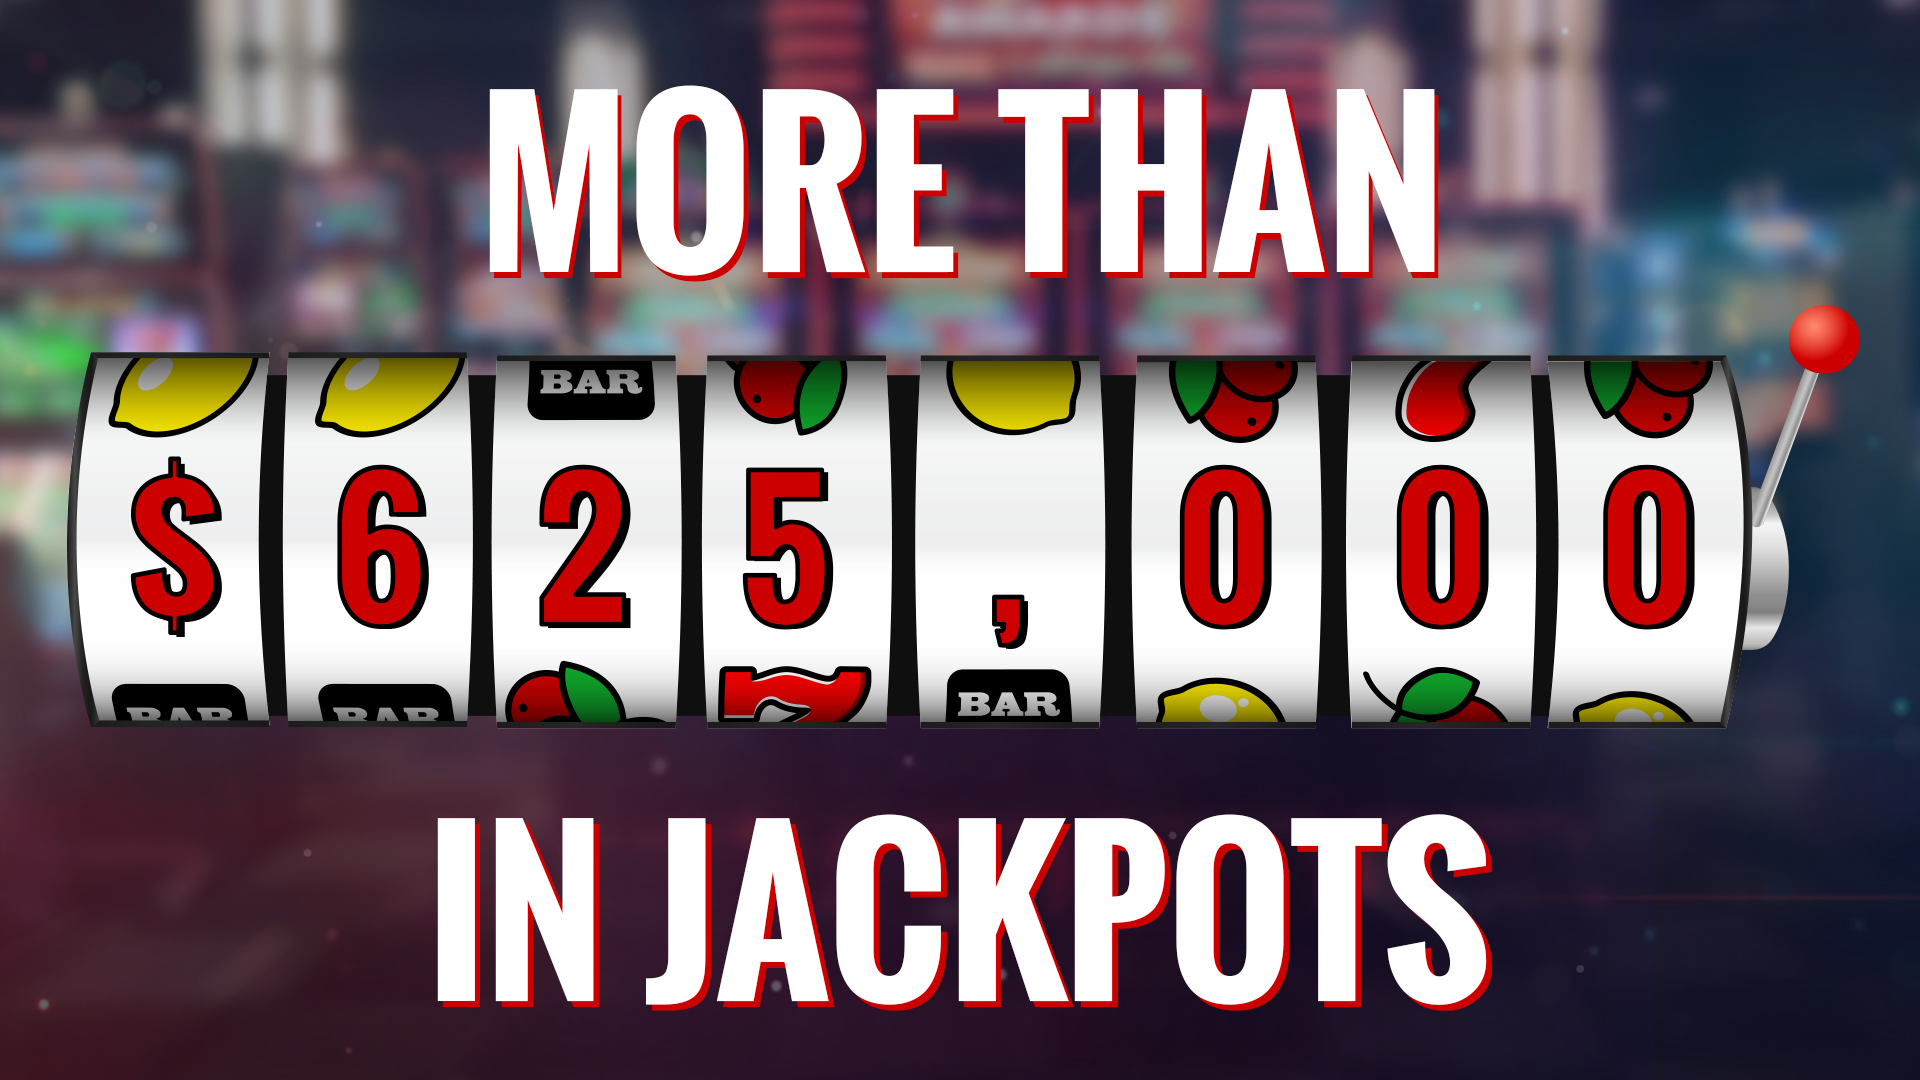 Over 150 Jackpot Winners!